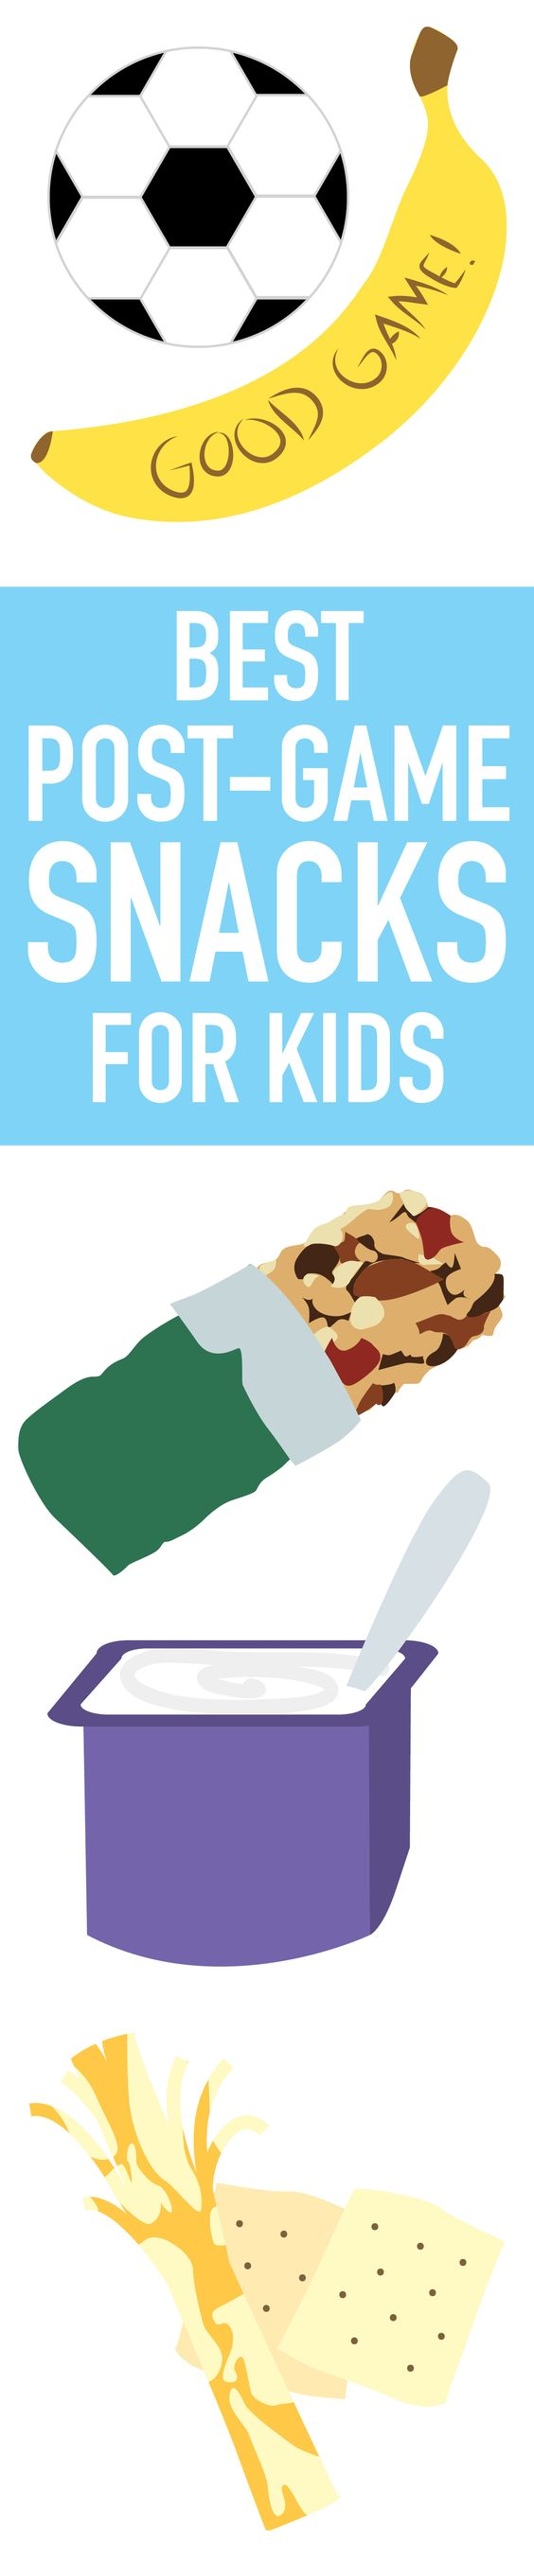 Lessons on proper ways to fuel an active body are just as vital as teaching kids to throw and pass. #Snacks #SnackRecipes #KidsSnacks